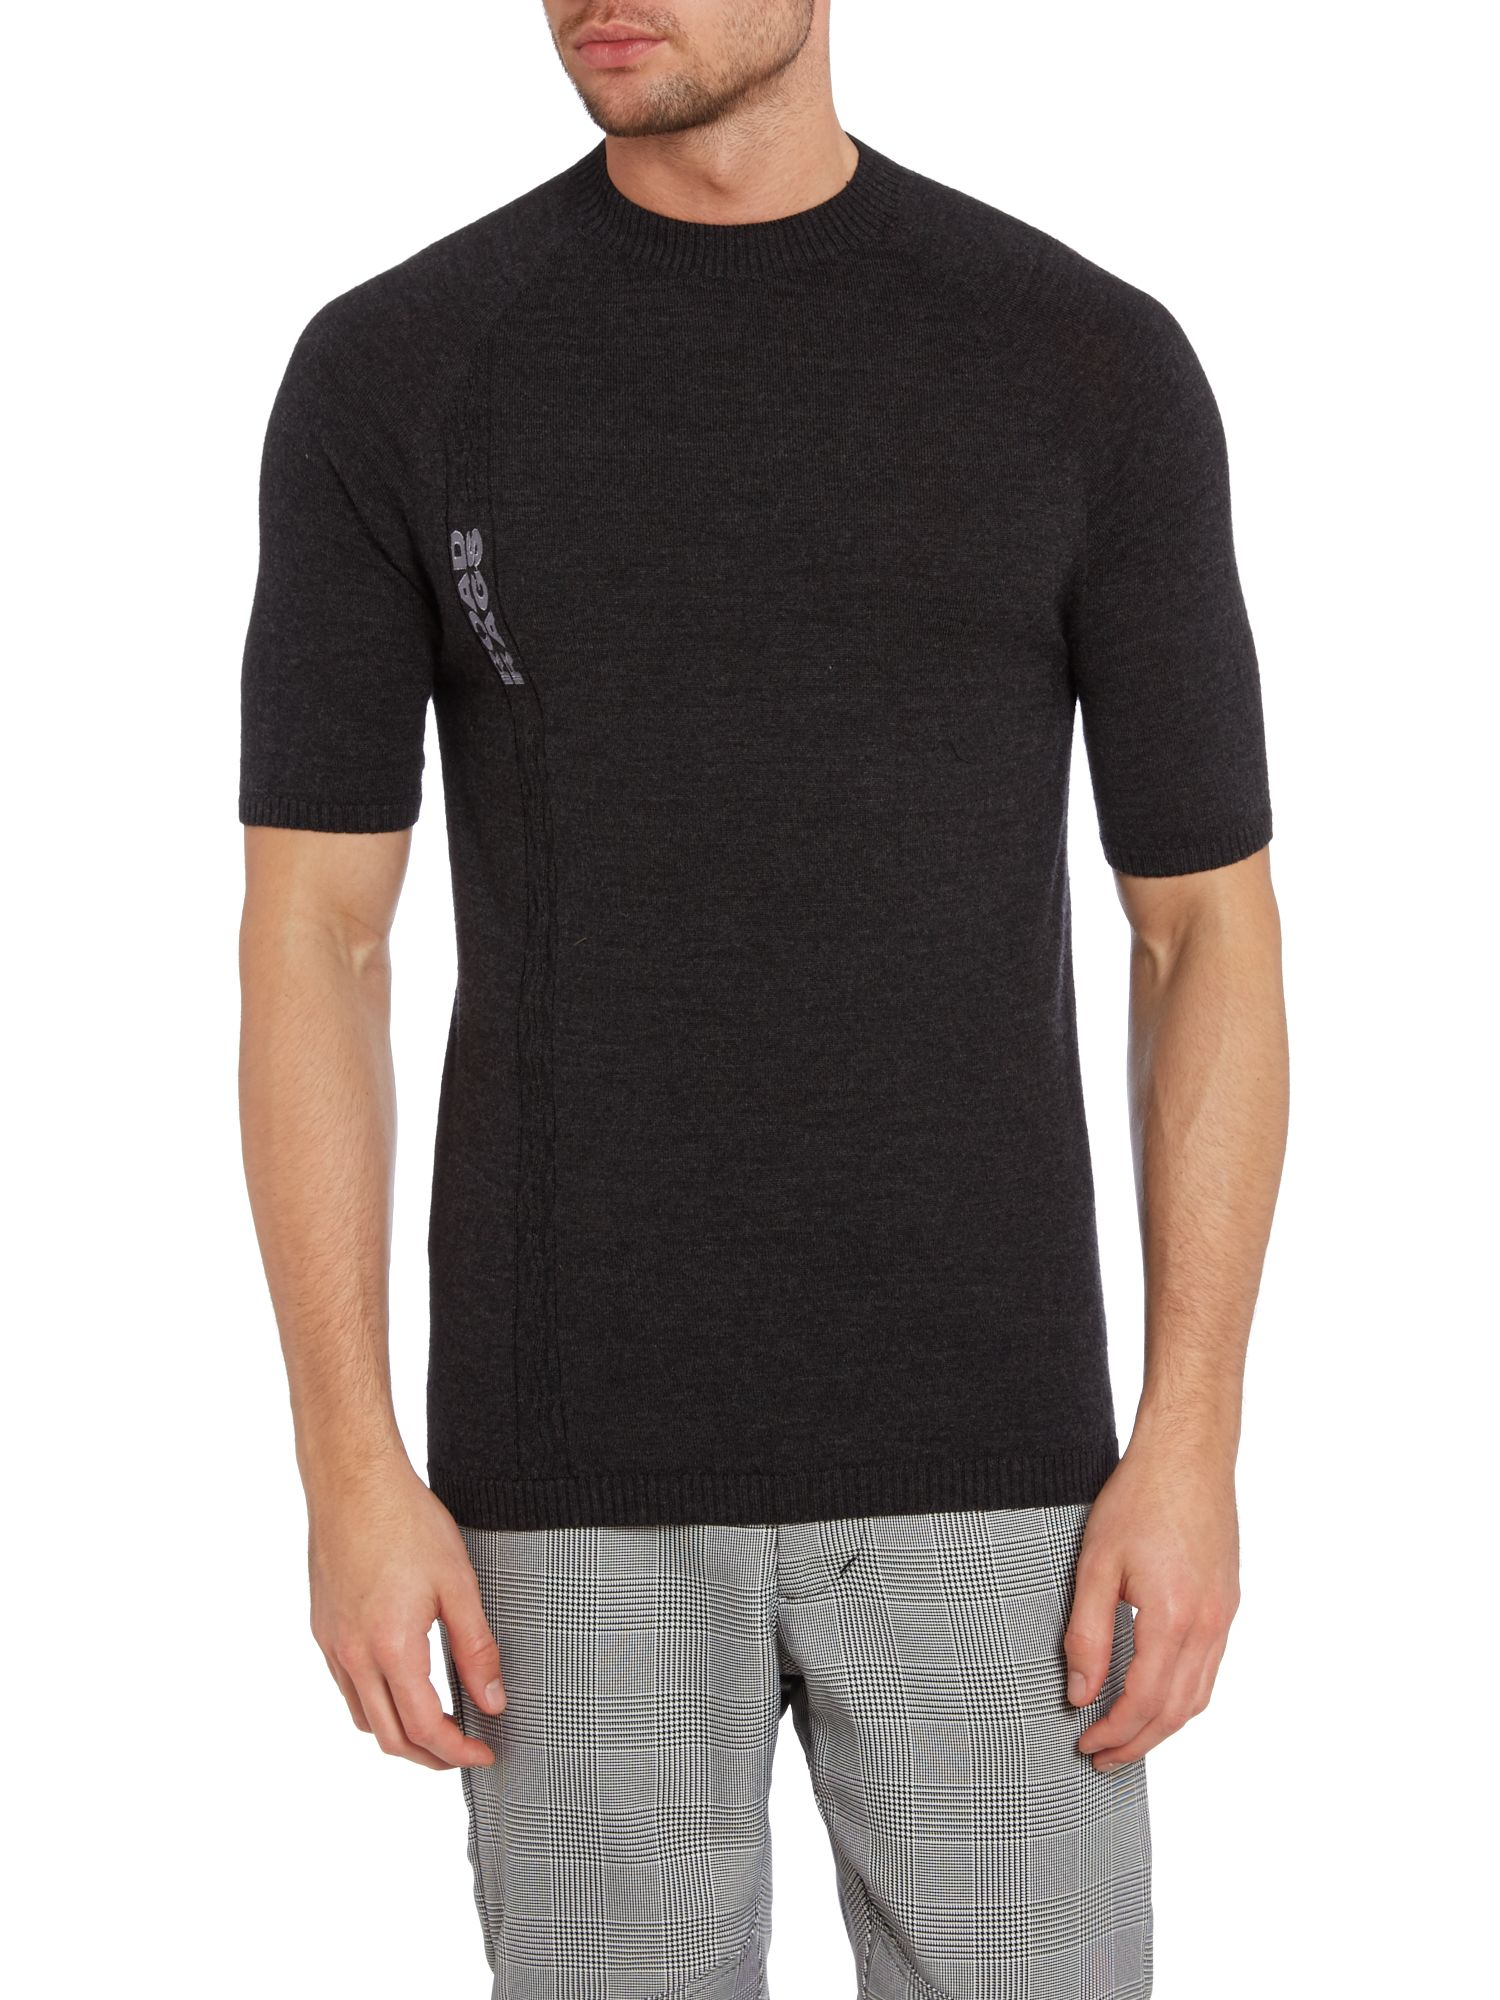 Road Rags Hoxton Merino Cycling Top in Black for Men - Lyst f561a39bd